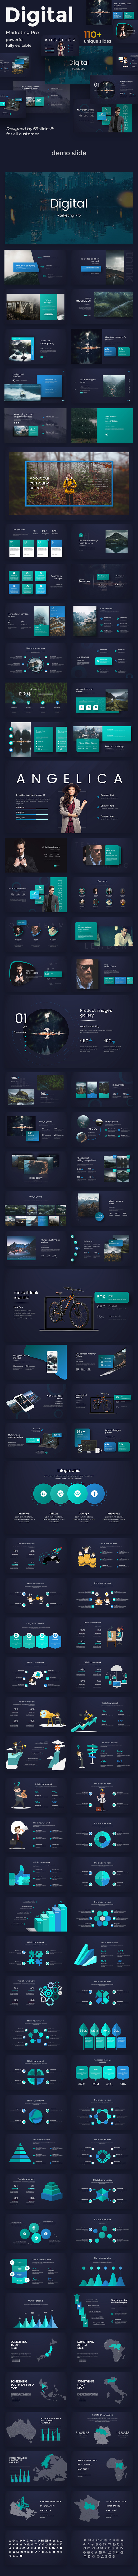 Digital Marketing Pro Design Keynote Template - Creative Keynote Templates